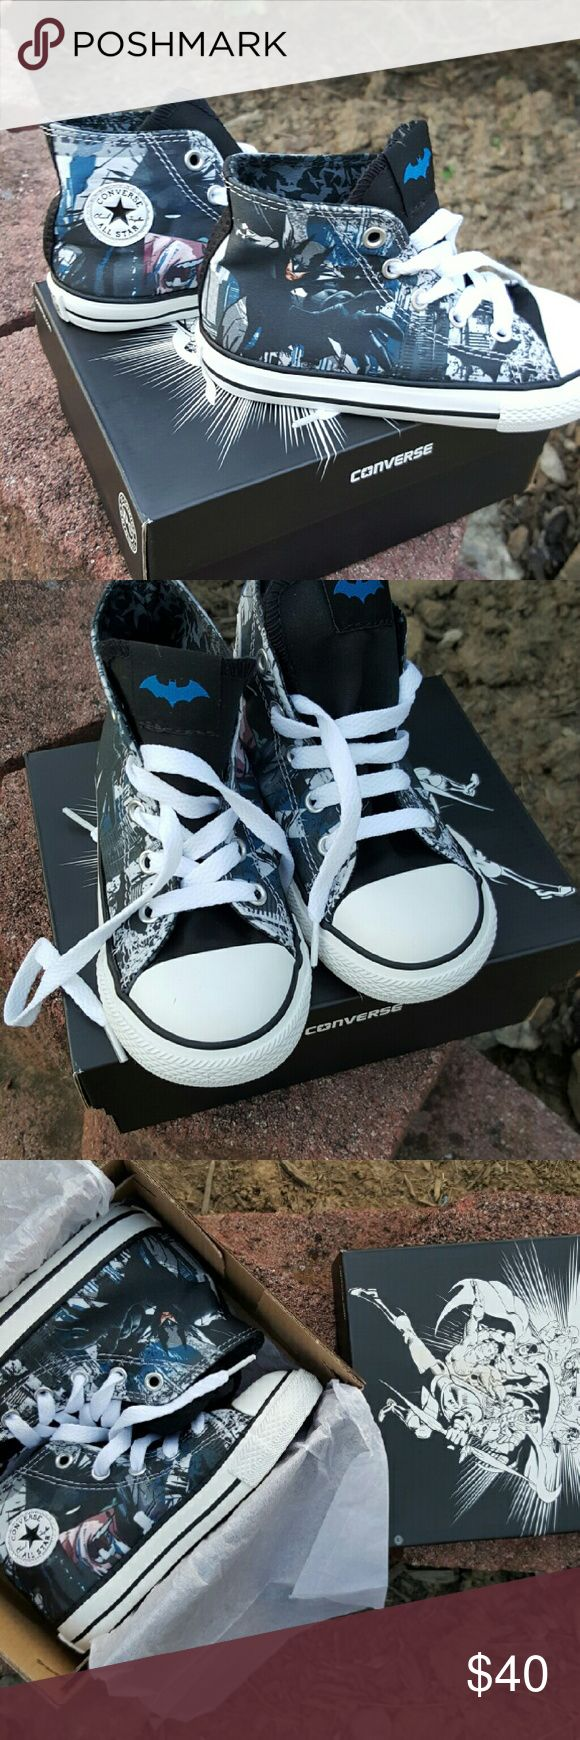 Toddlers Batman Converse size 8 Toddler size 8 Batman Converse. Brand New with box. Never had tags. Bought from Journeys ..   Collectors never worn. Paid 60. Asking 40 OBO. Comes with black or white shoe strings Converse Shoes Sneakers